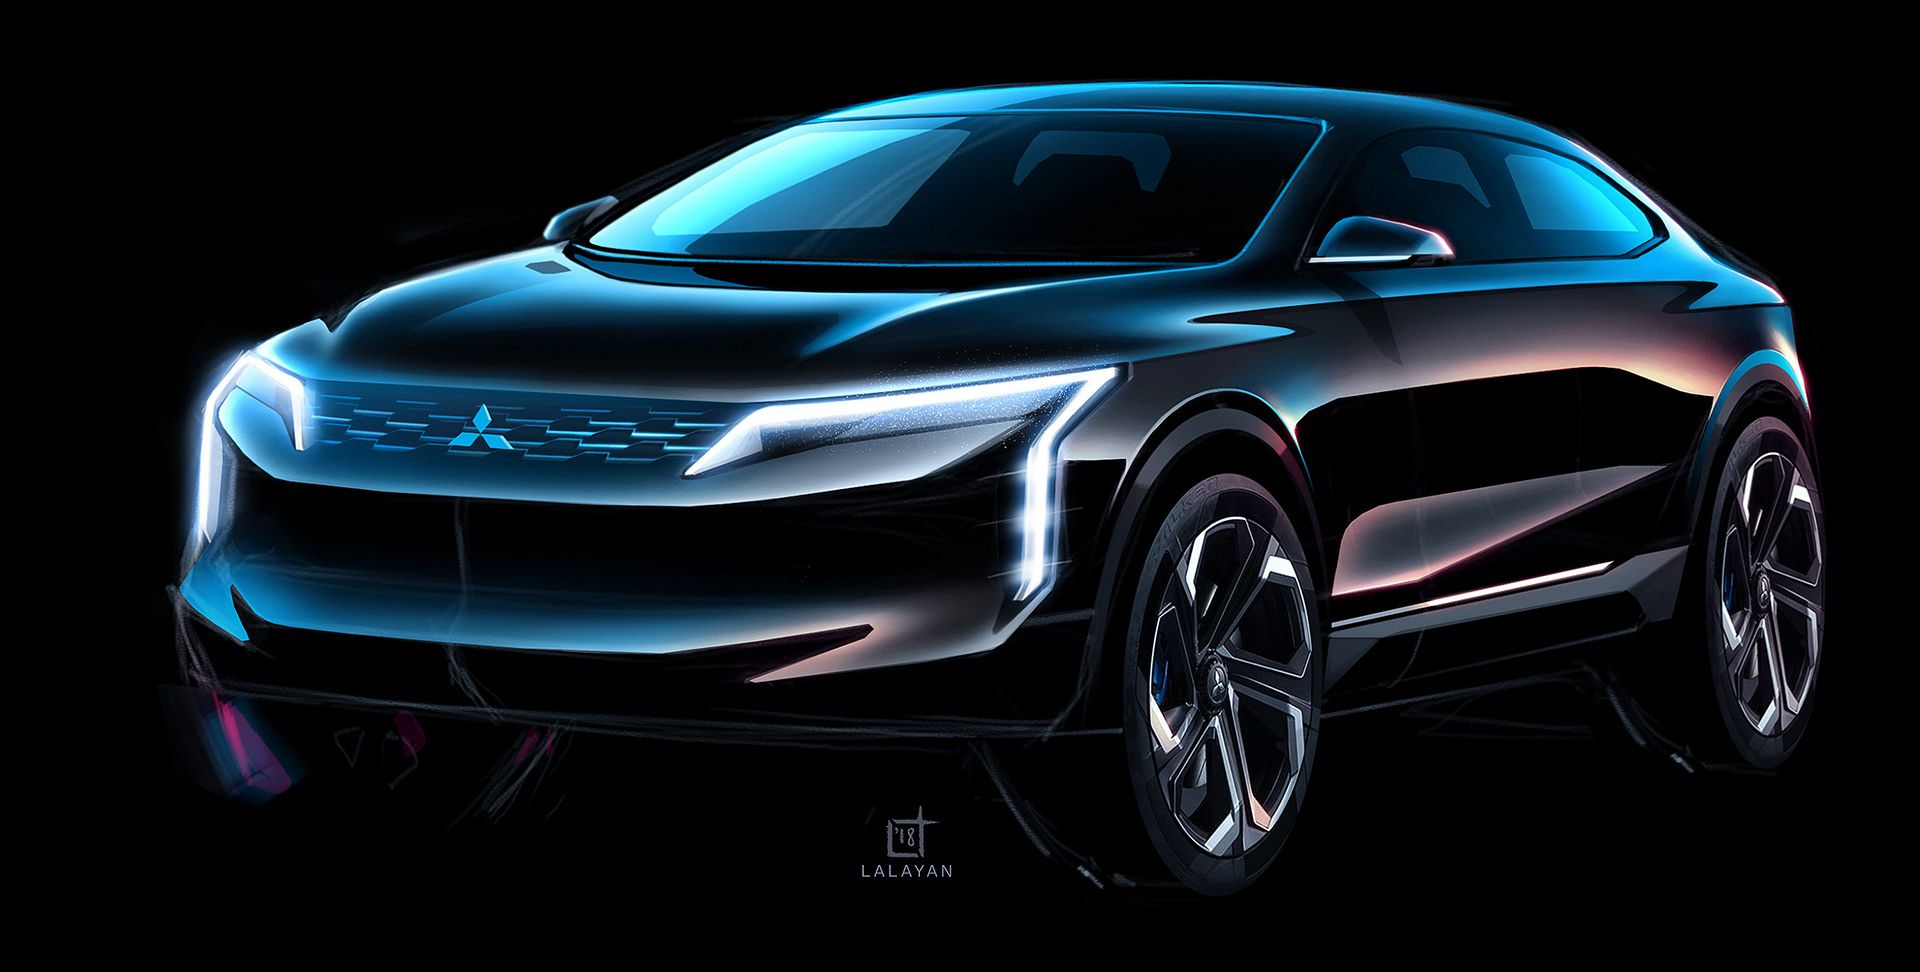 2020 Mitsubishi Lancer Release Date and Concept